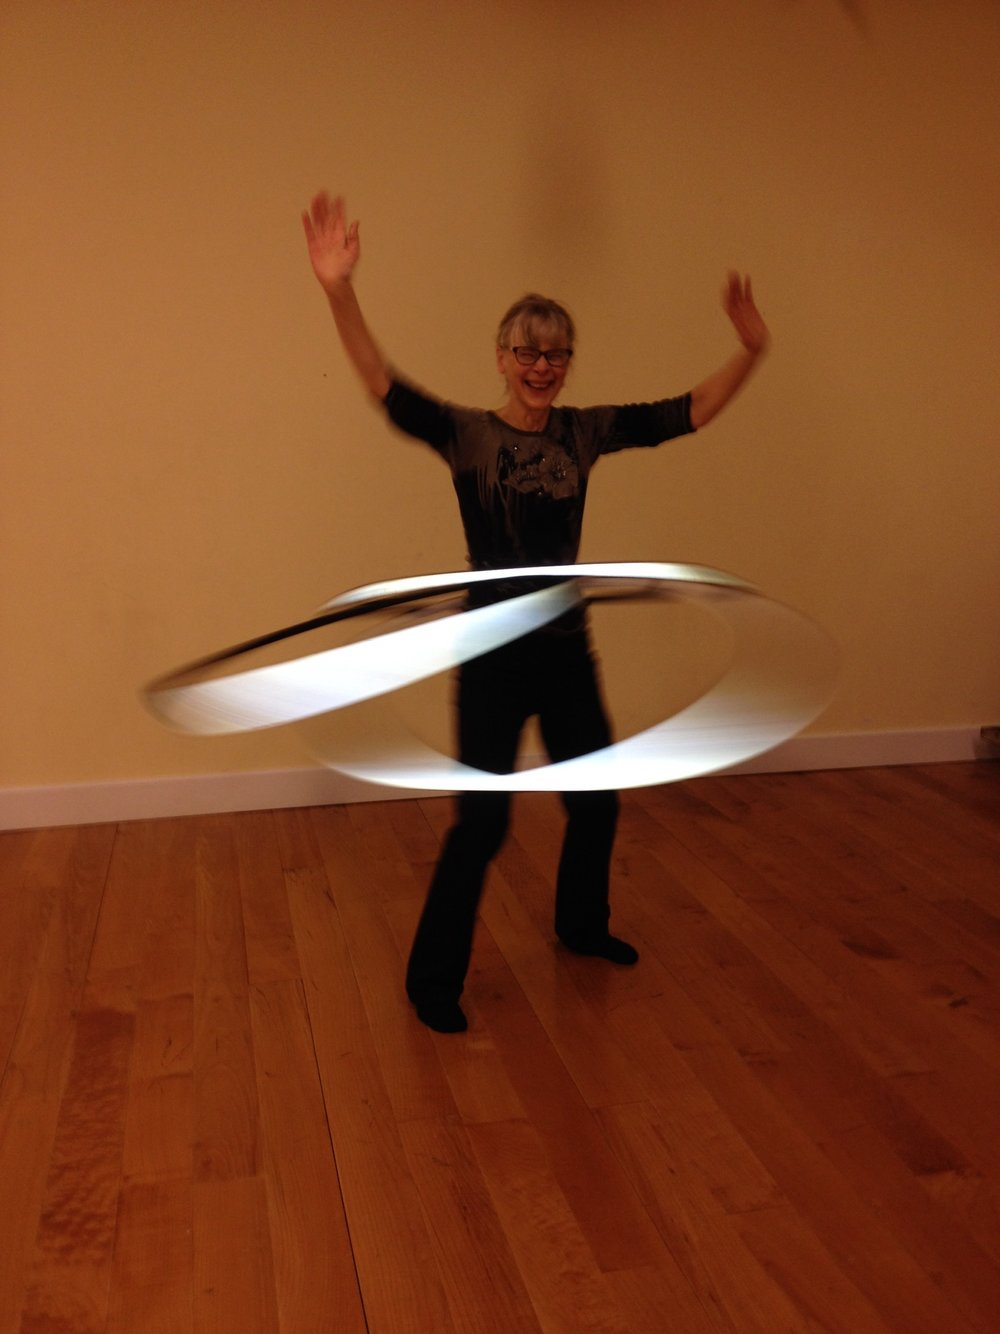 Look at the pure Joy in her face! That's what I love most about Hoop Dancing. Image taken tonight at the Center for Mindful use, Hoop Dance every Thursday at 5:55pm.